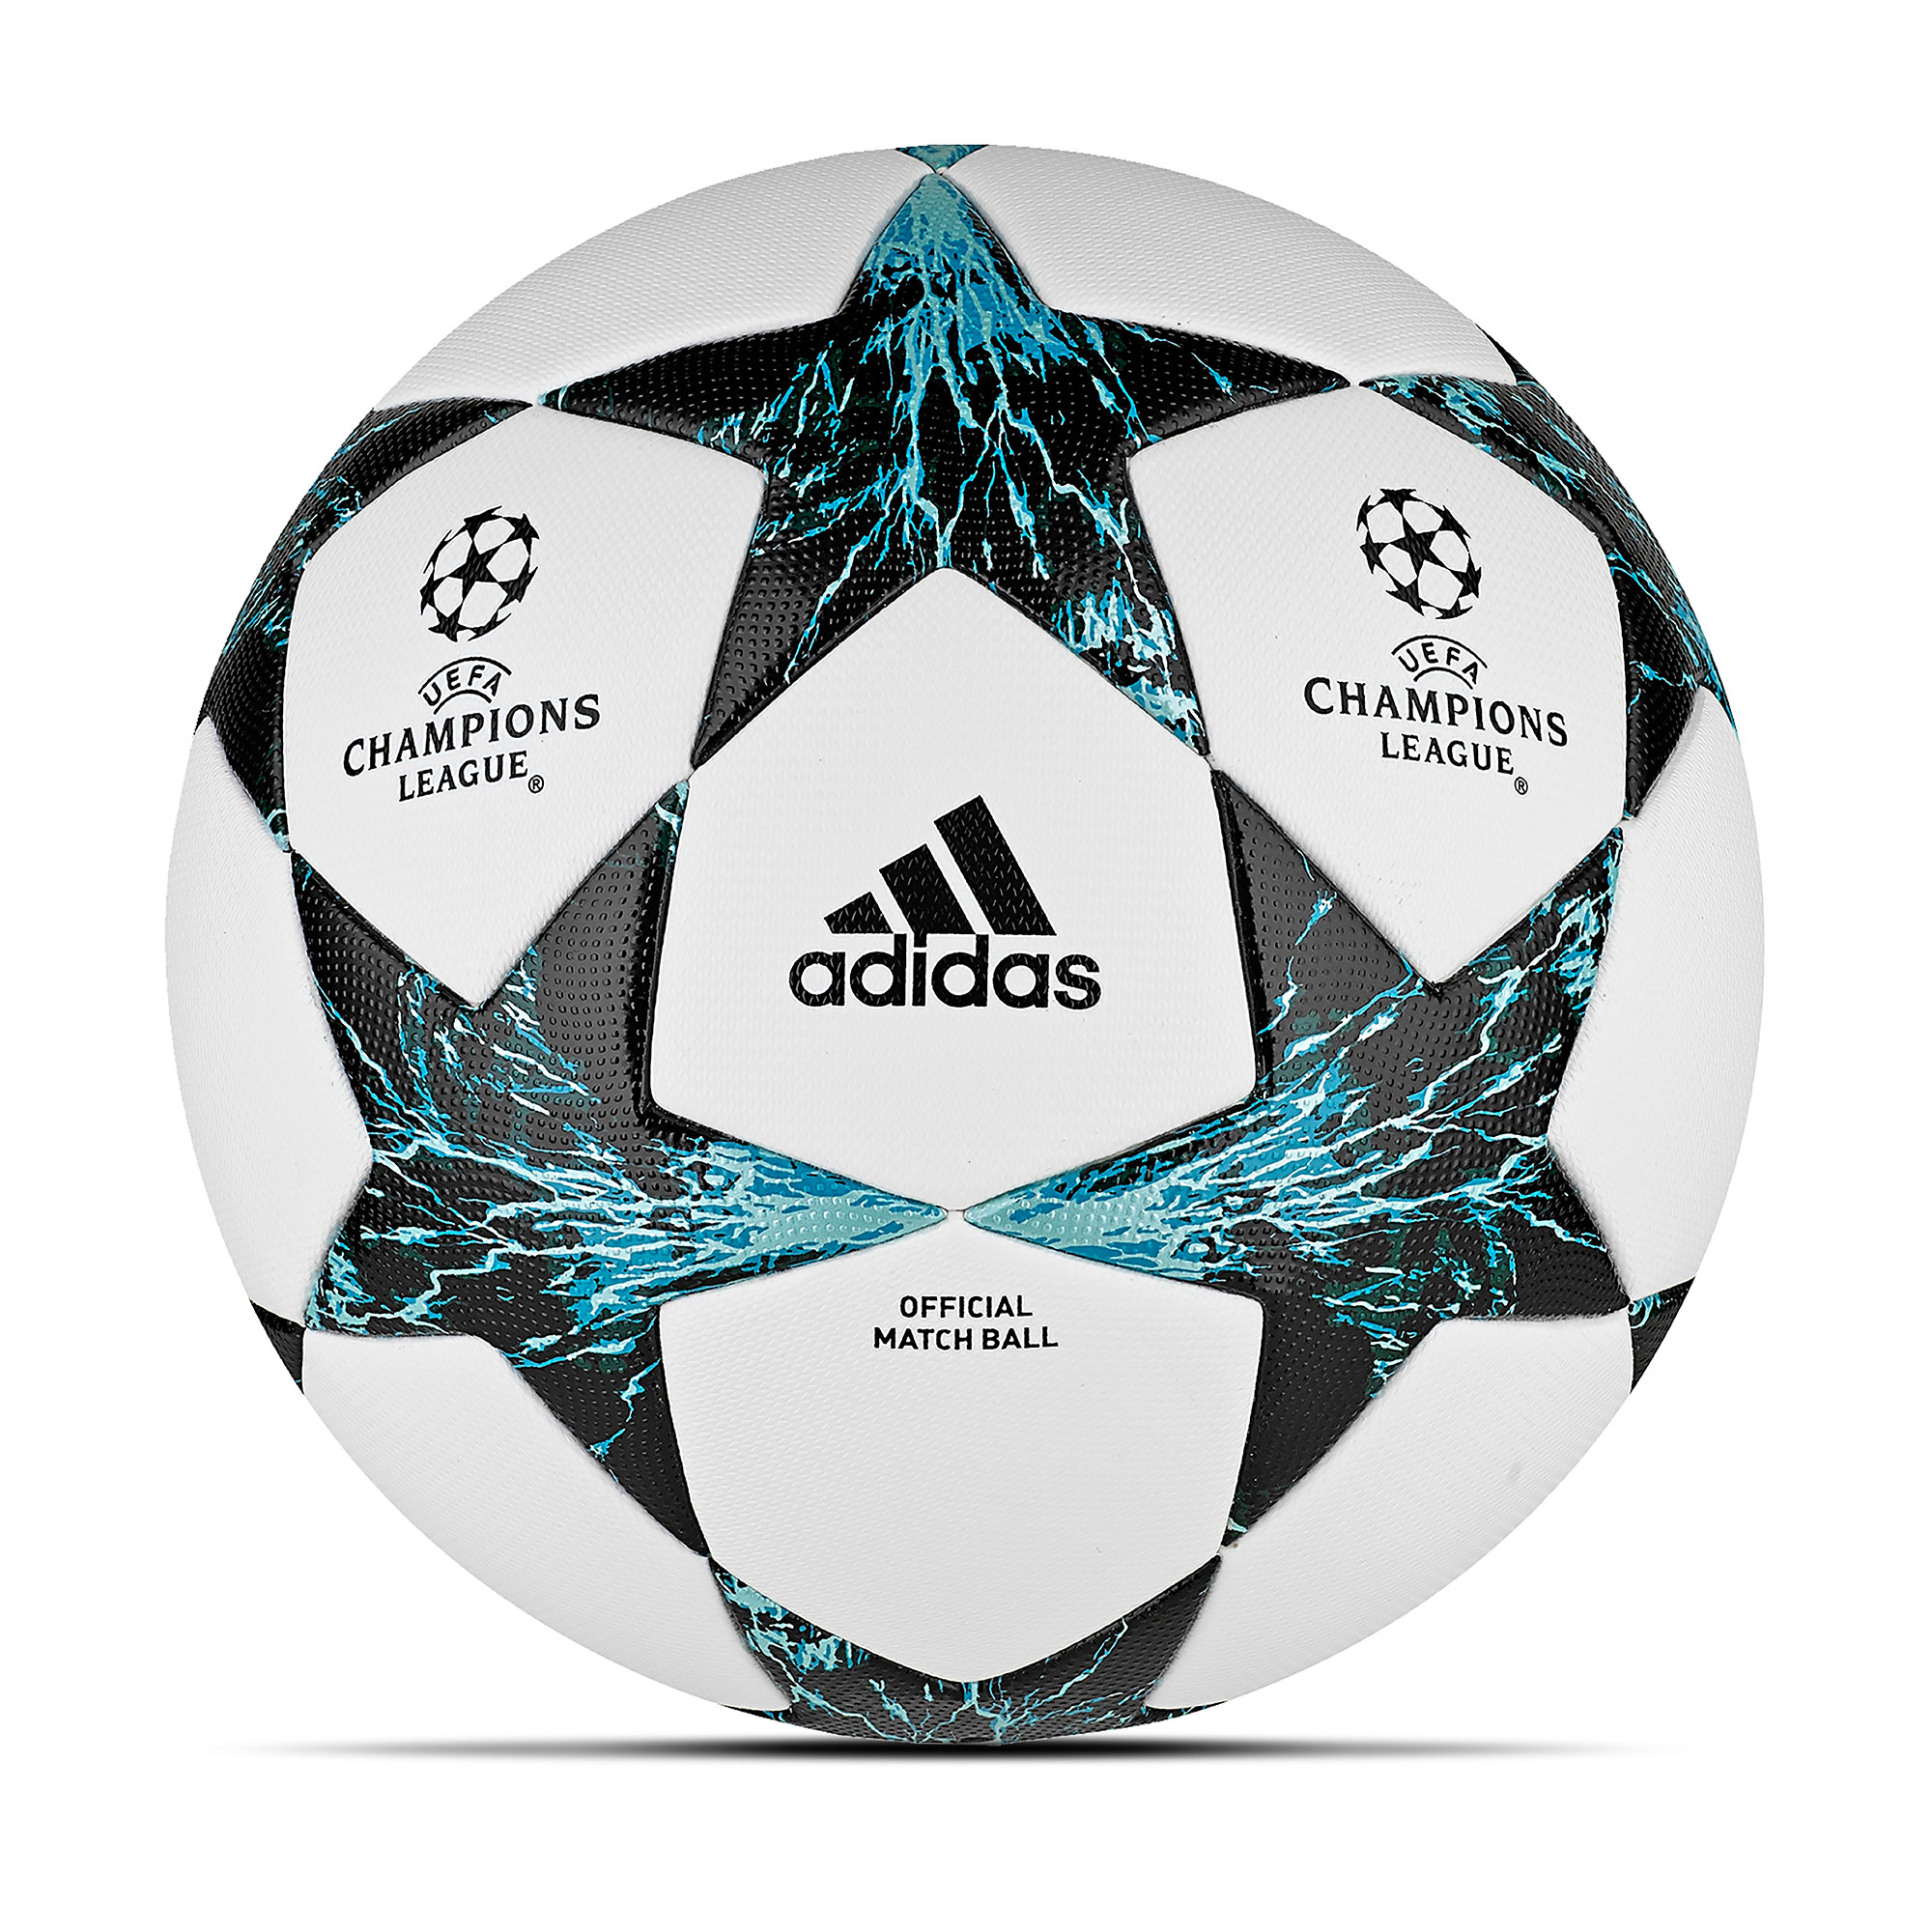 Image of adidas UEFA Champions League Finale 17 Official Match Football - White/Core Black/Dark Green - Size 5